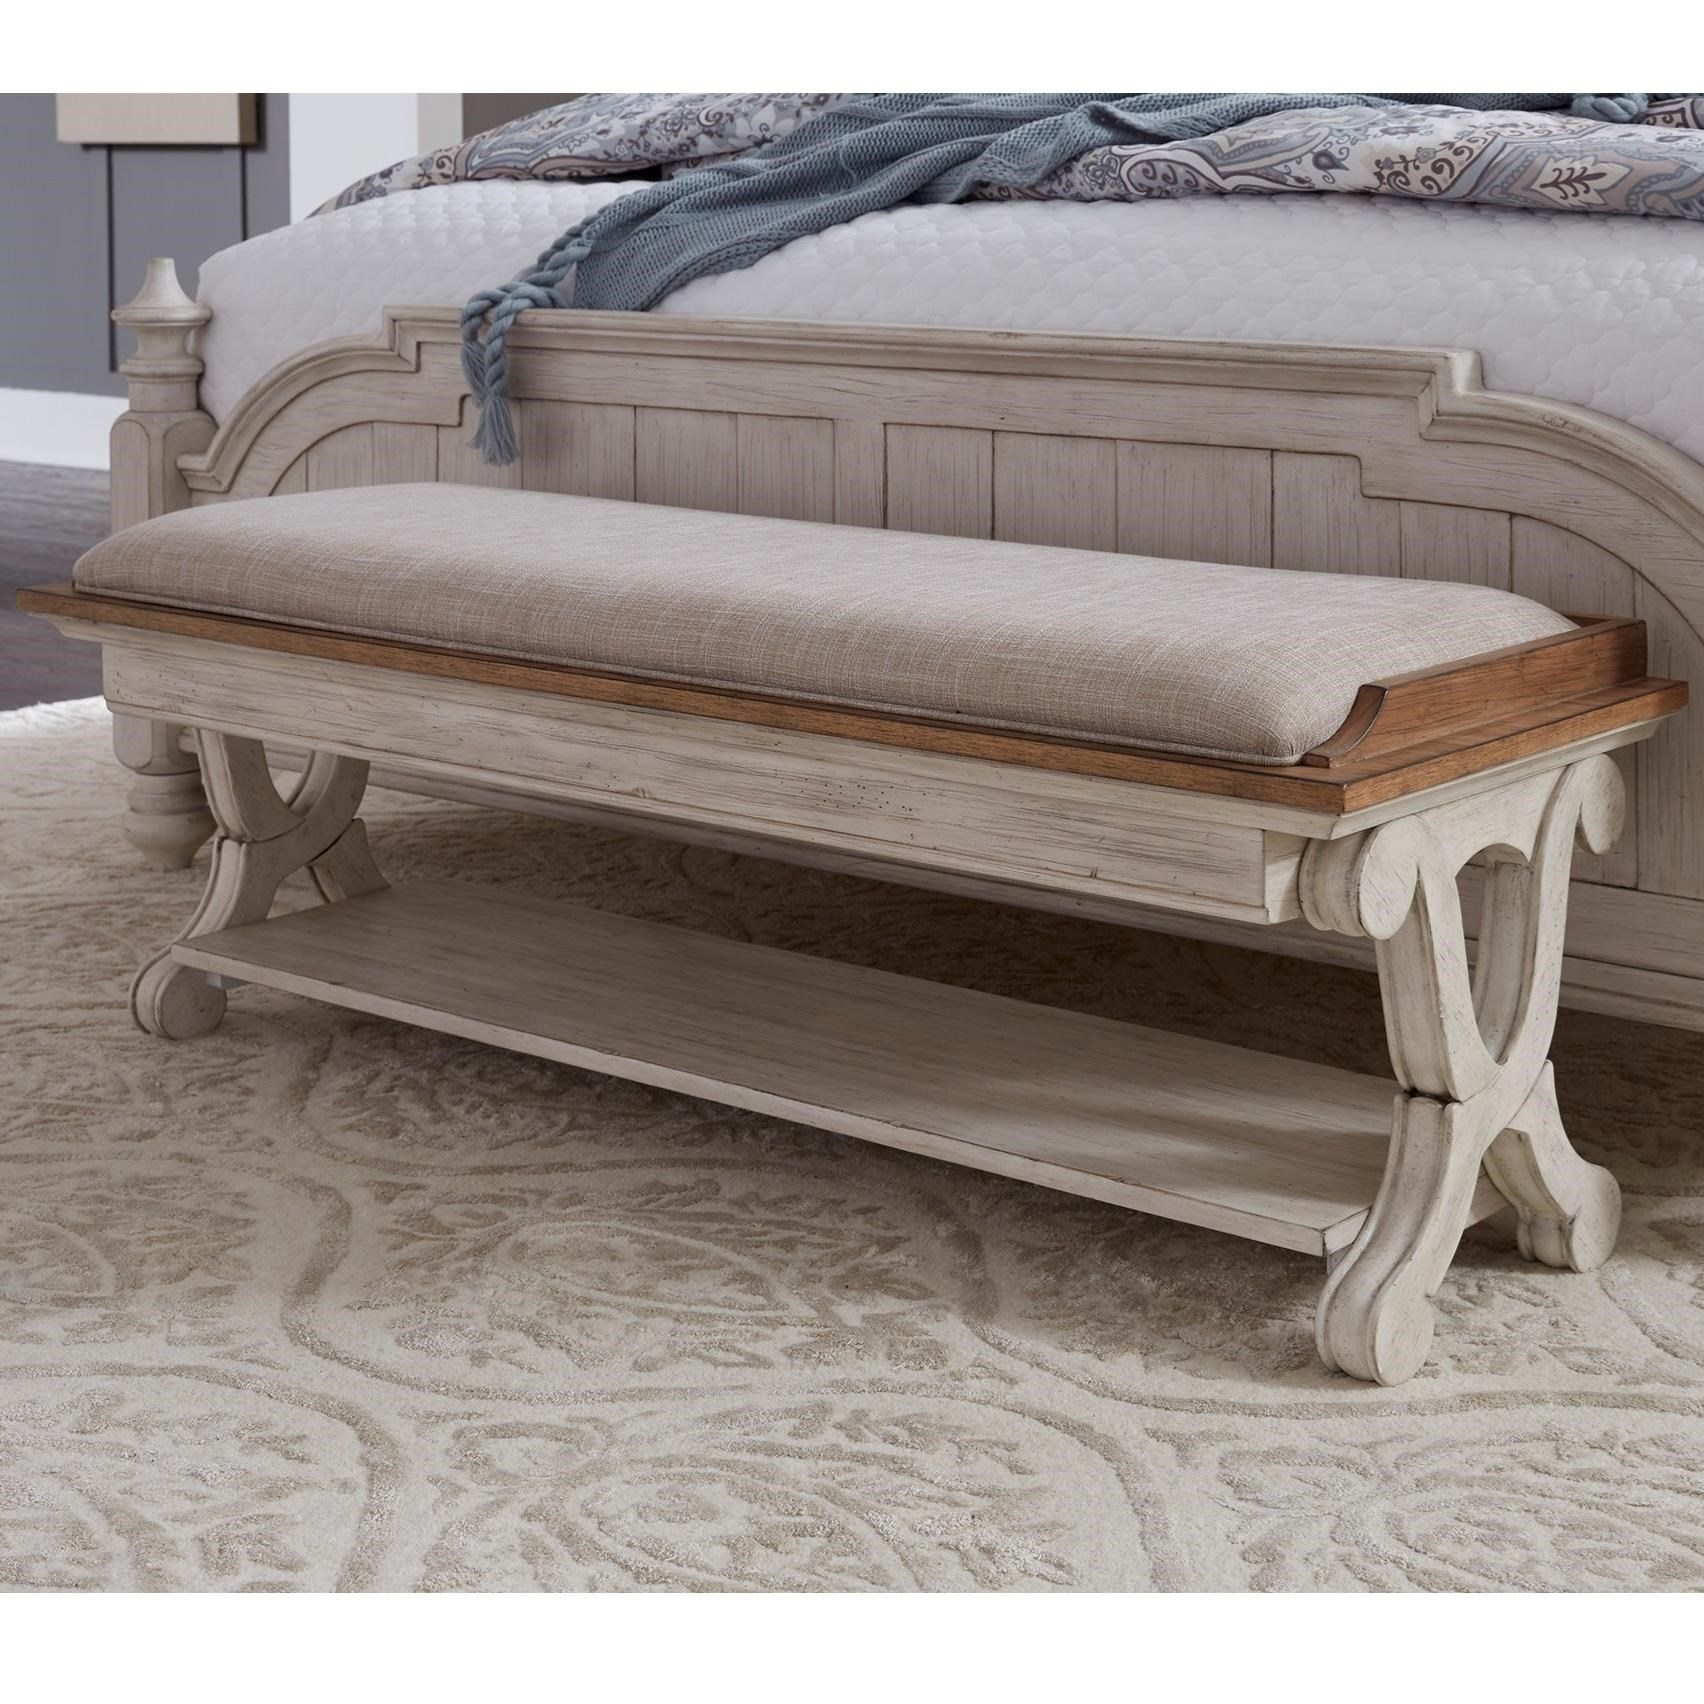 Charmant Farmhouse Reimagined Relaxed Vintage Bed Bench With Bottom Shelf By Sarah  Randolph Designs